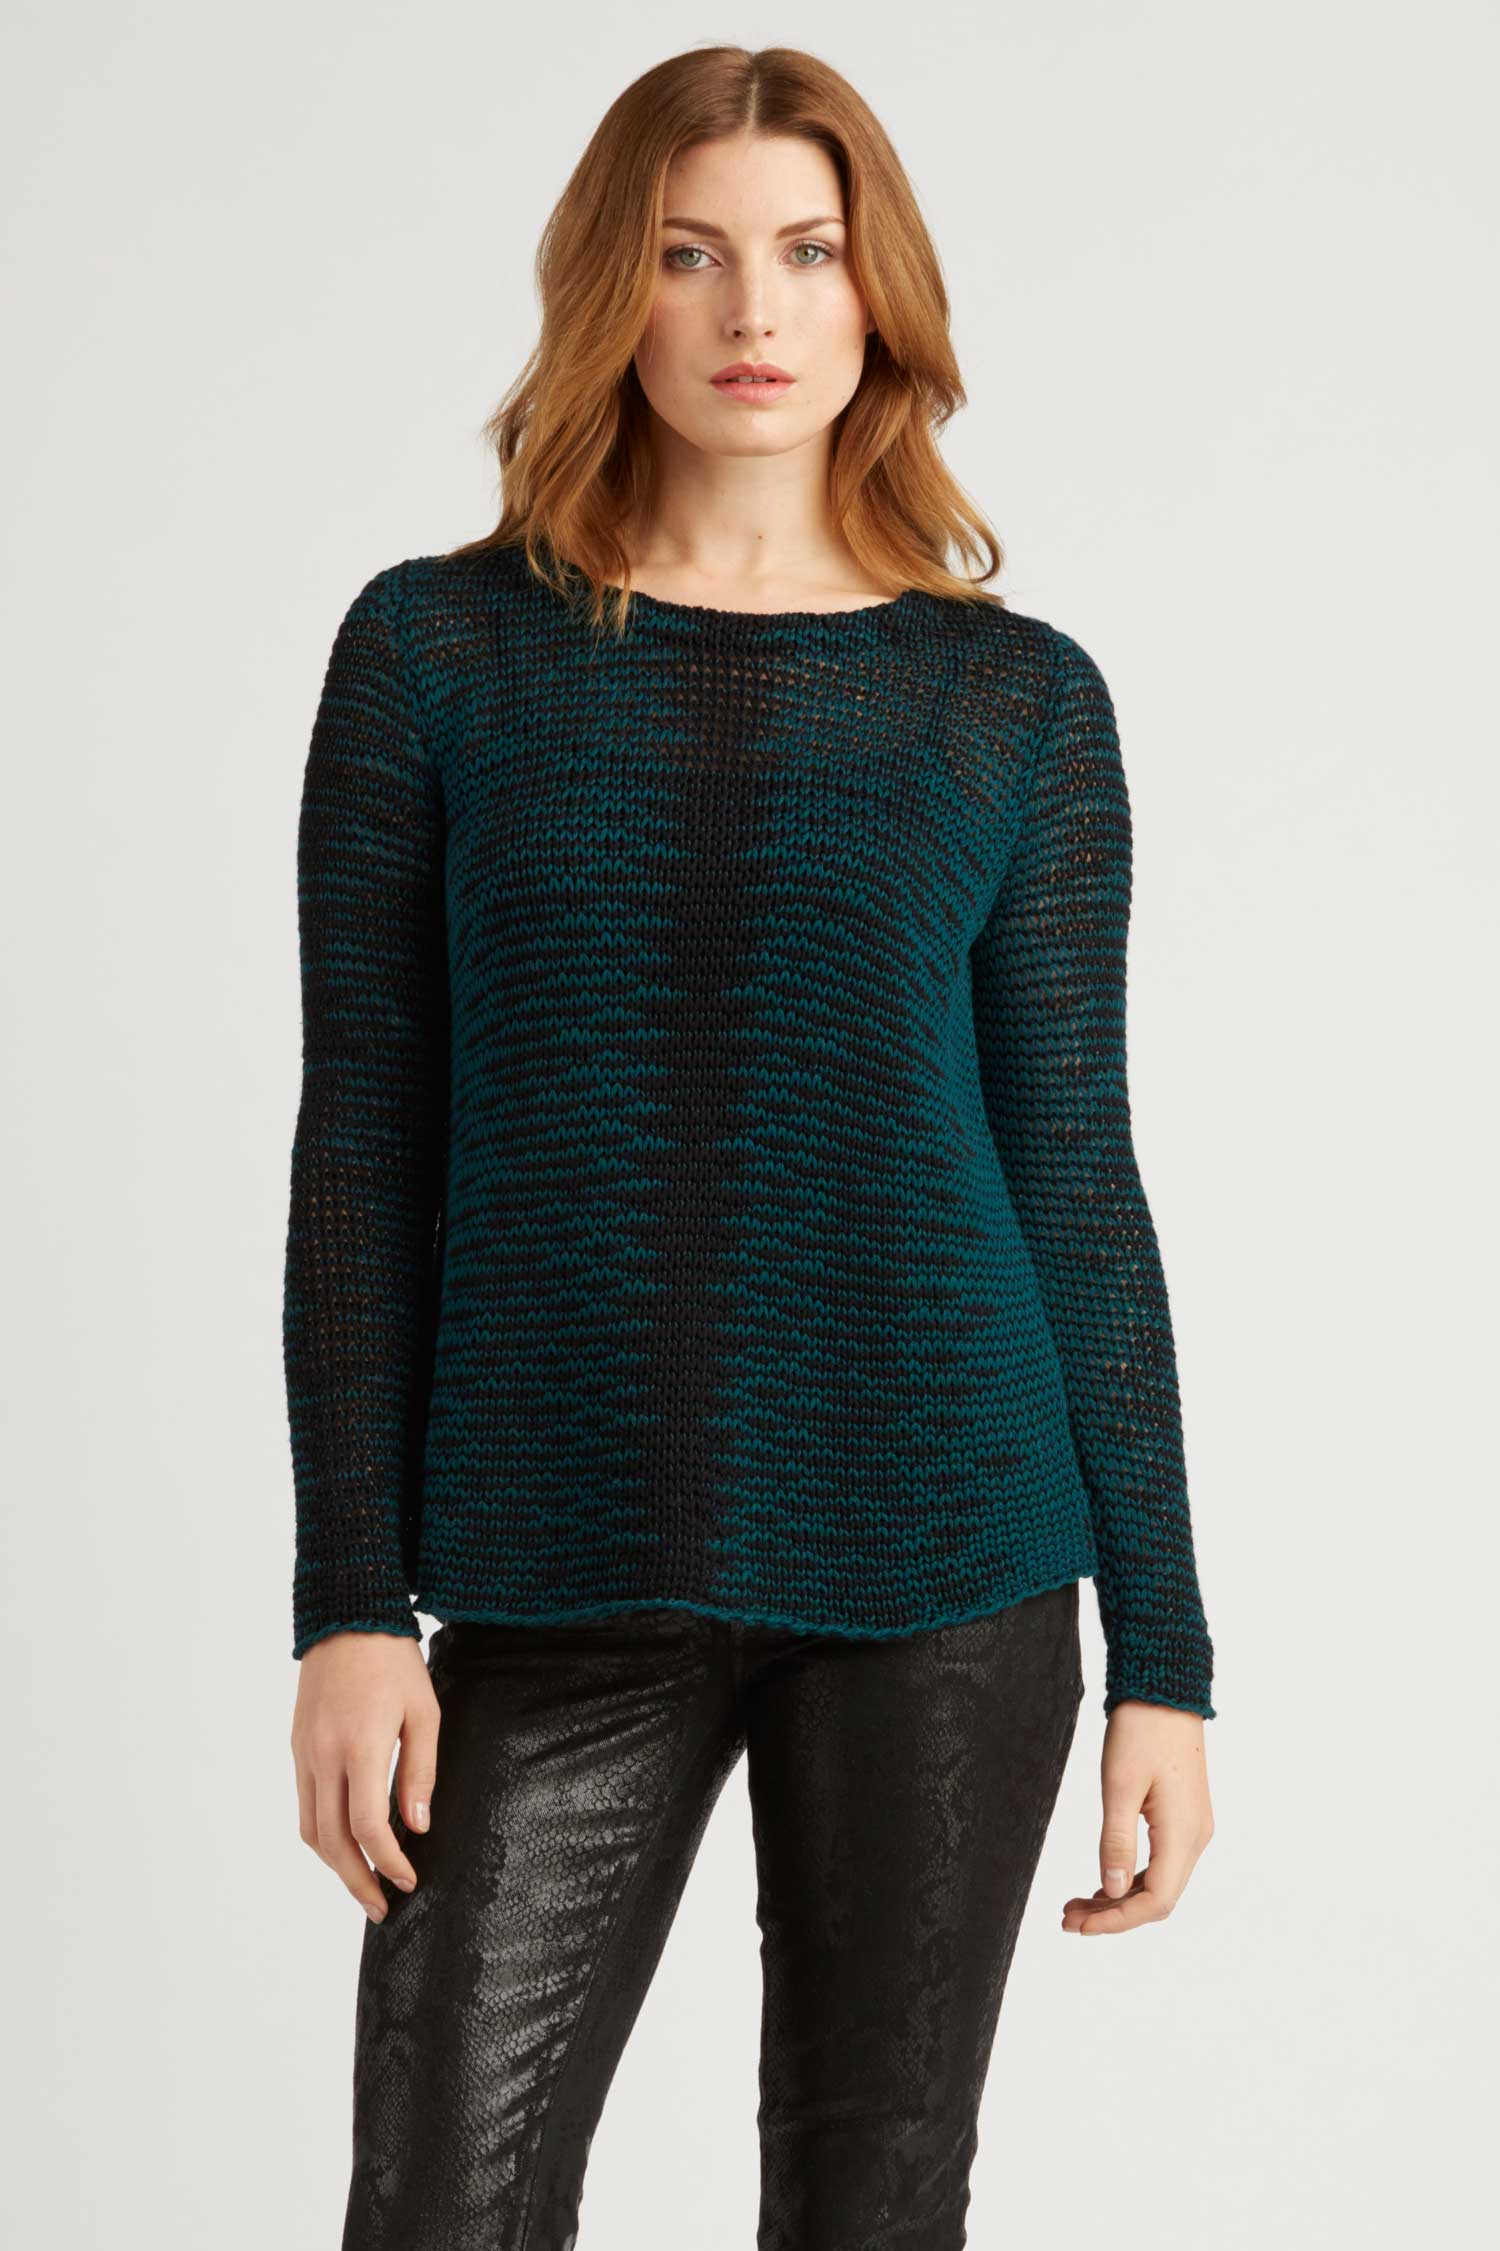 Womens Artisan Knit Sweater | Organic Cotton Clothing | Teal Black